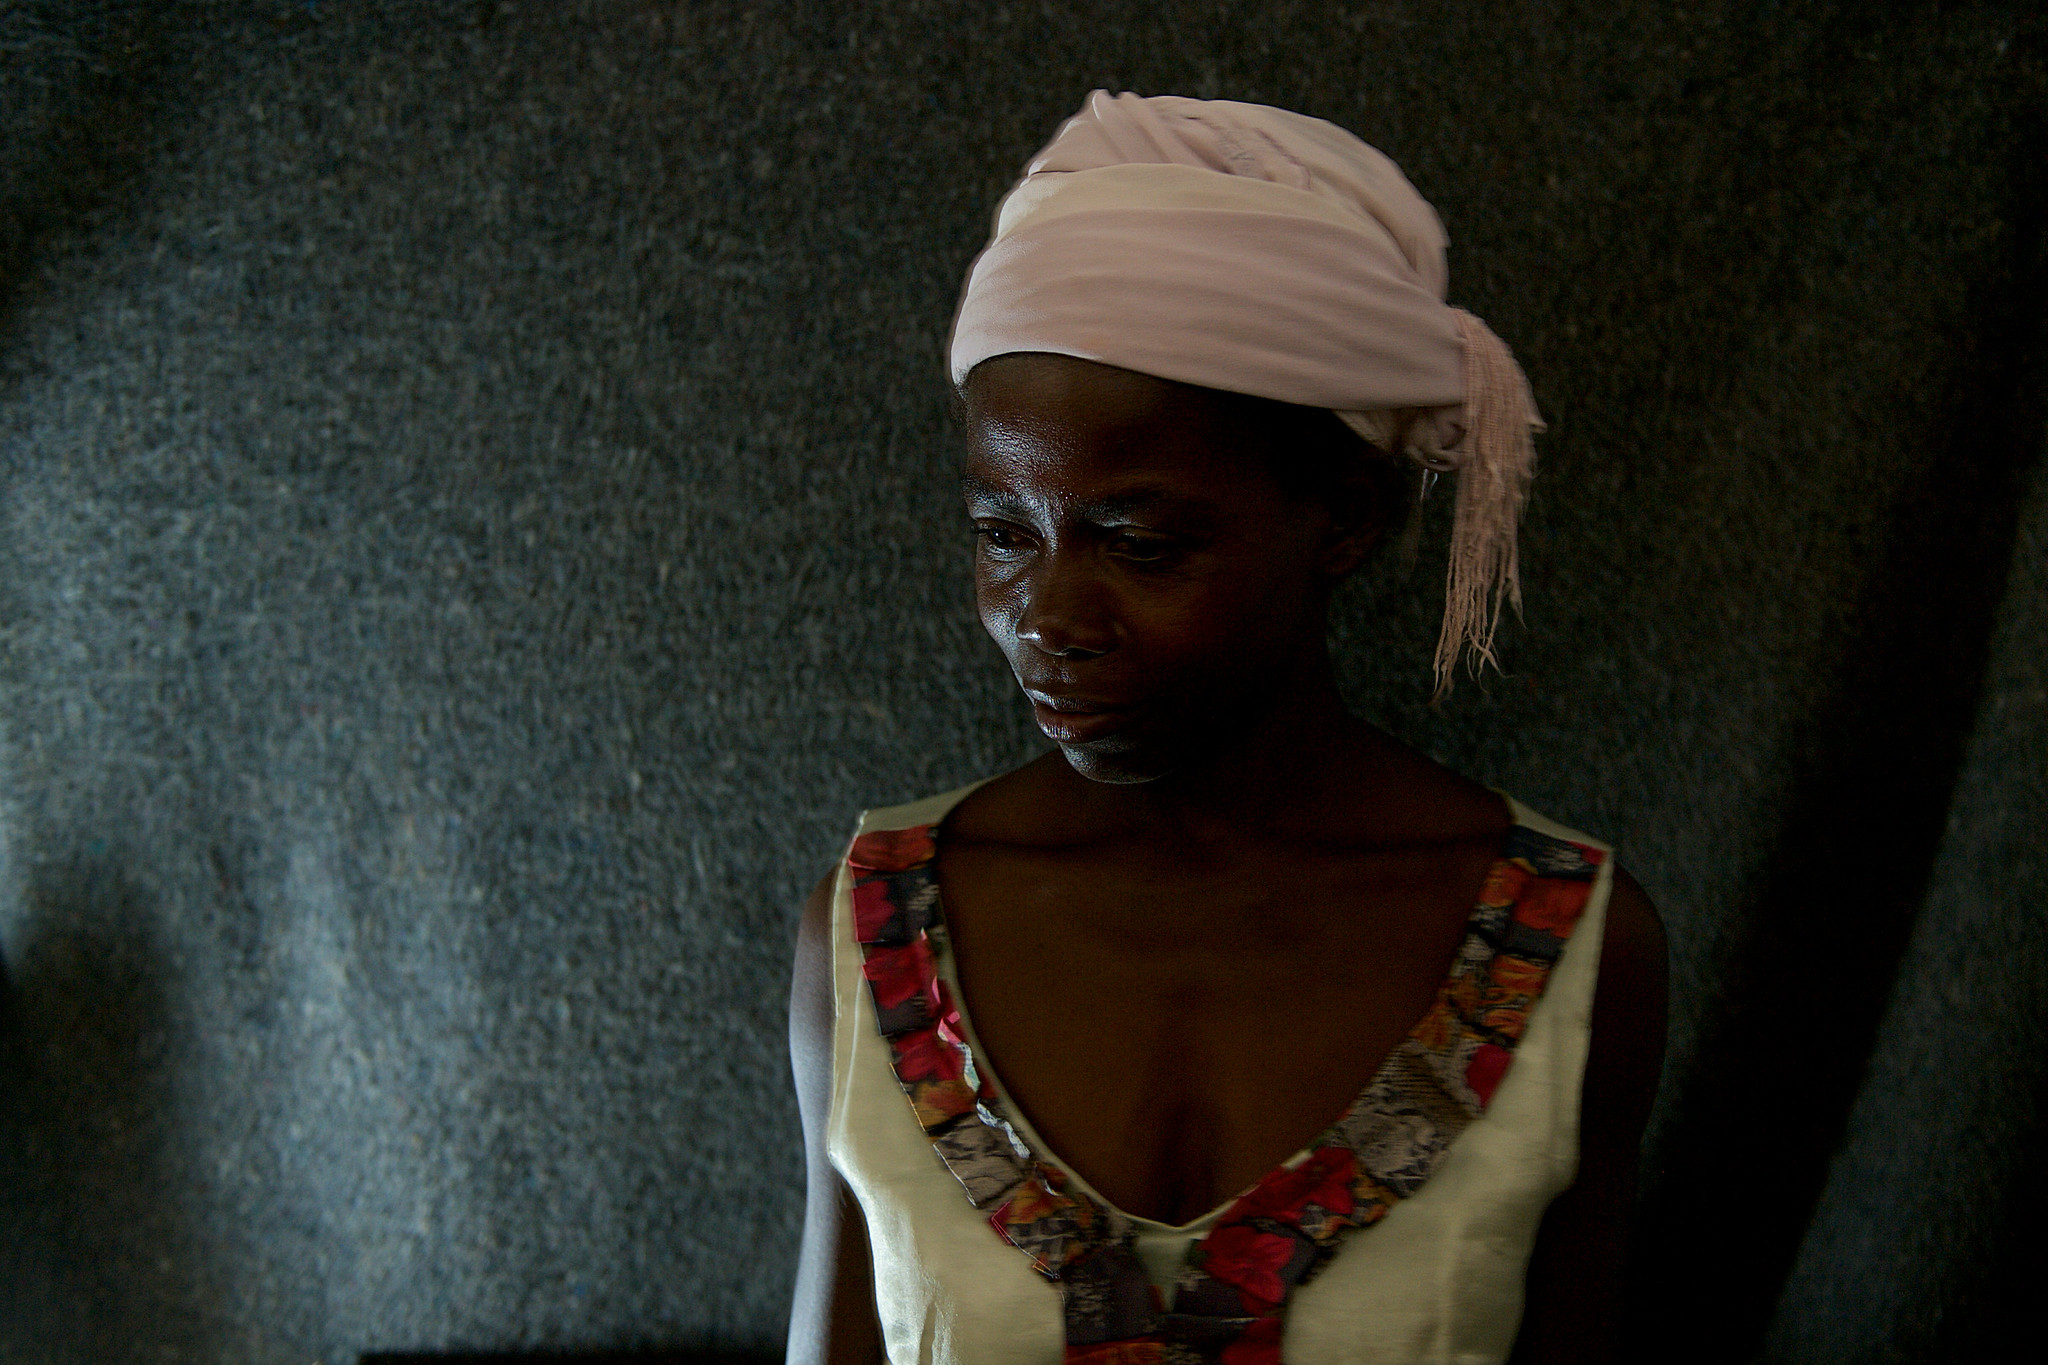 A portrait of a woman from DRC who has received support after fleeing gender based violence